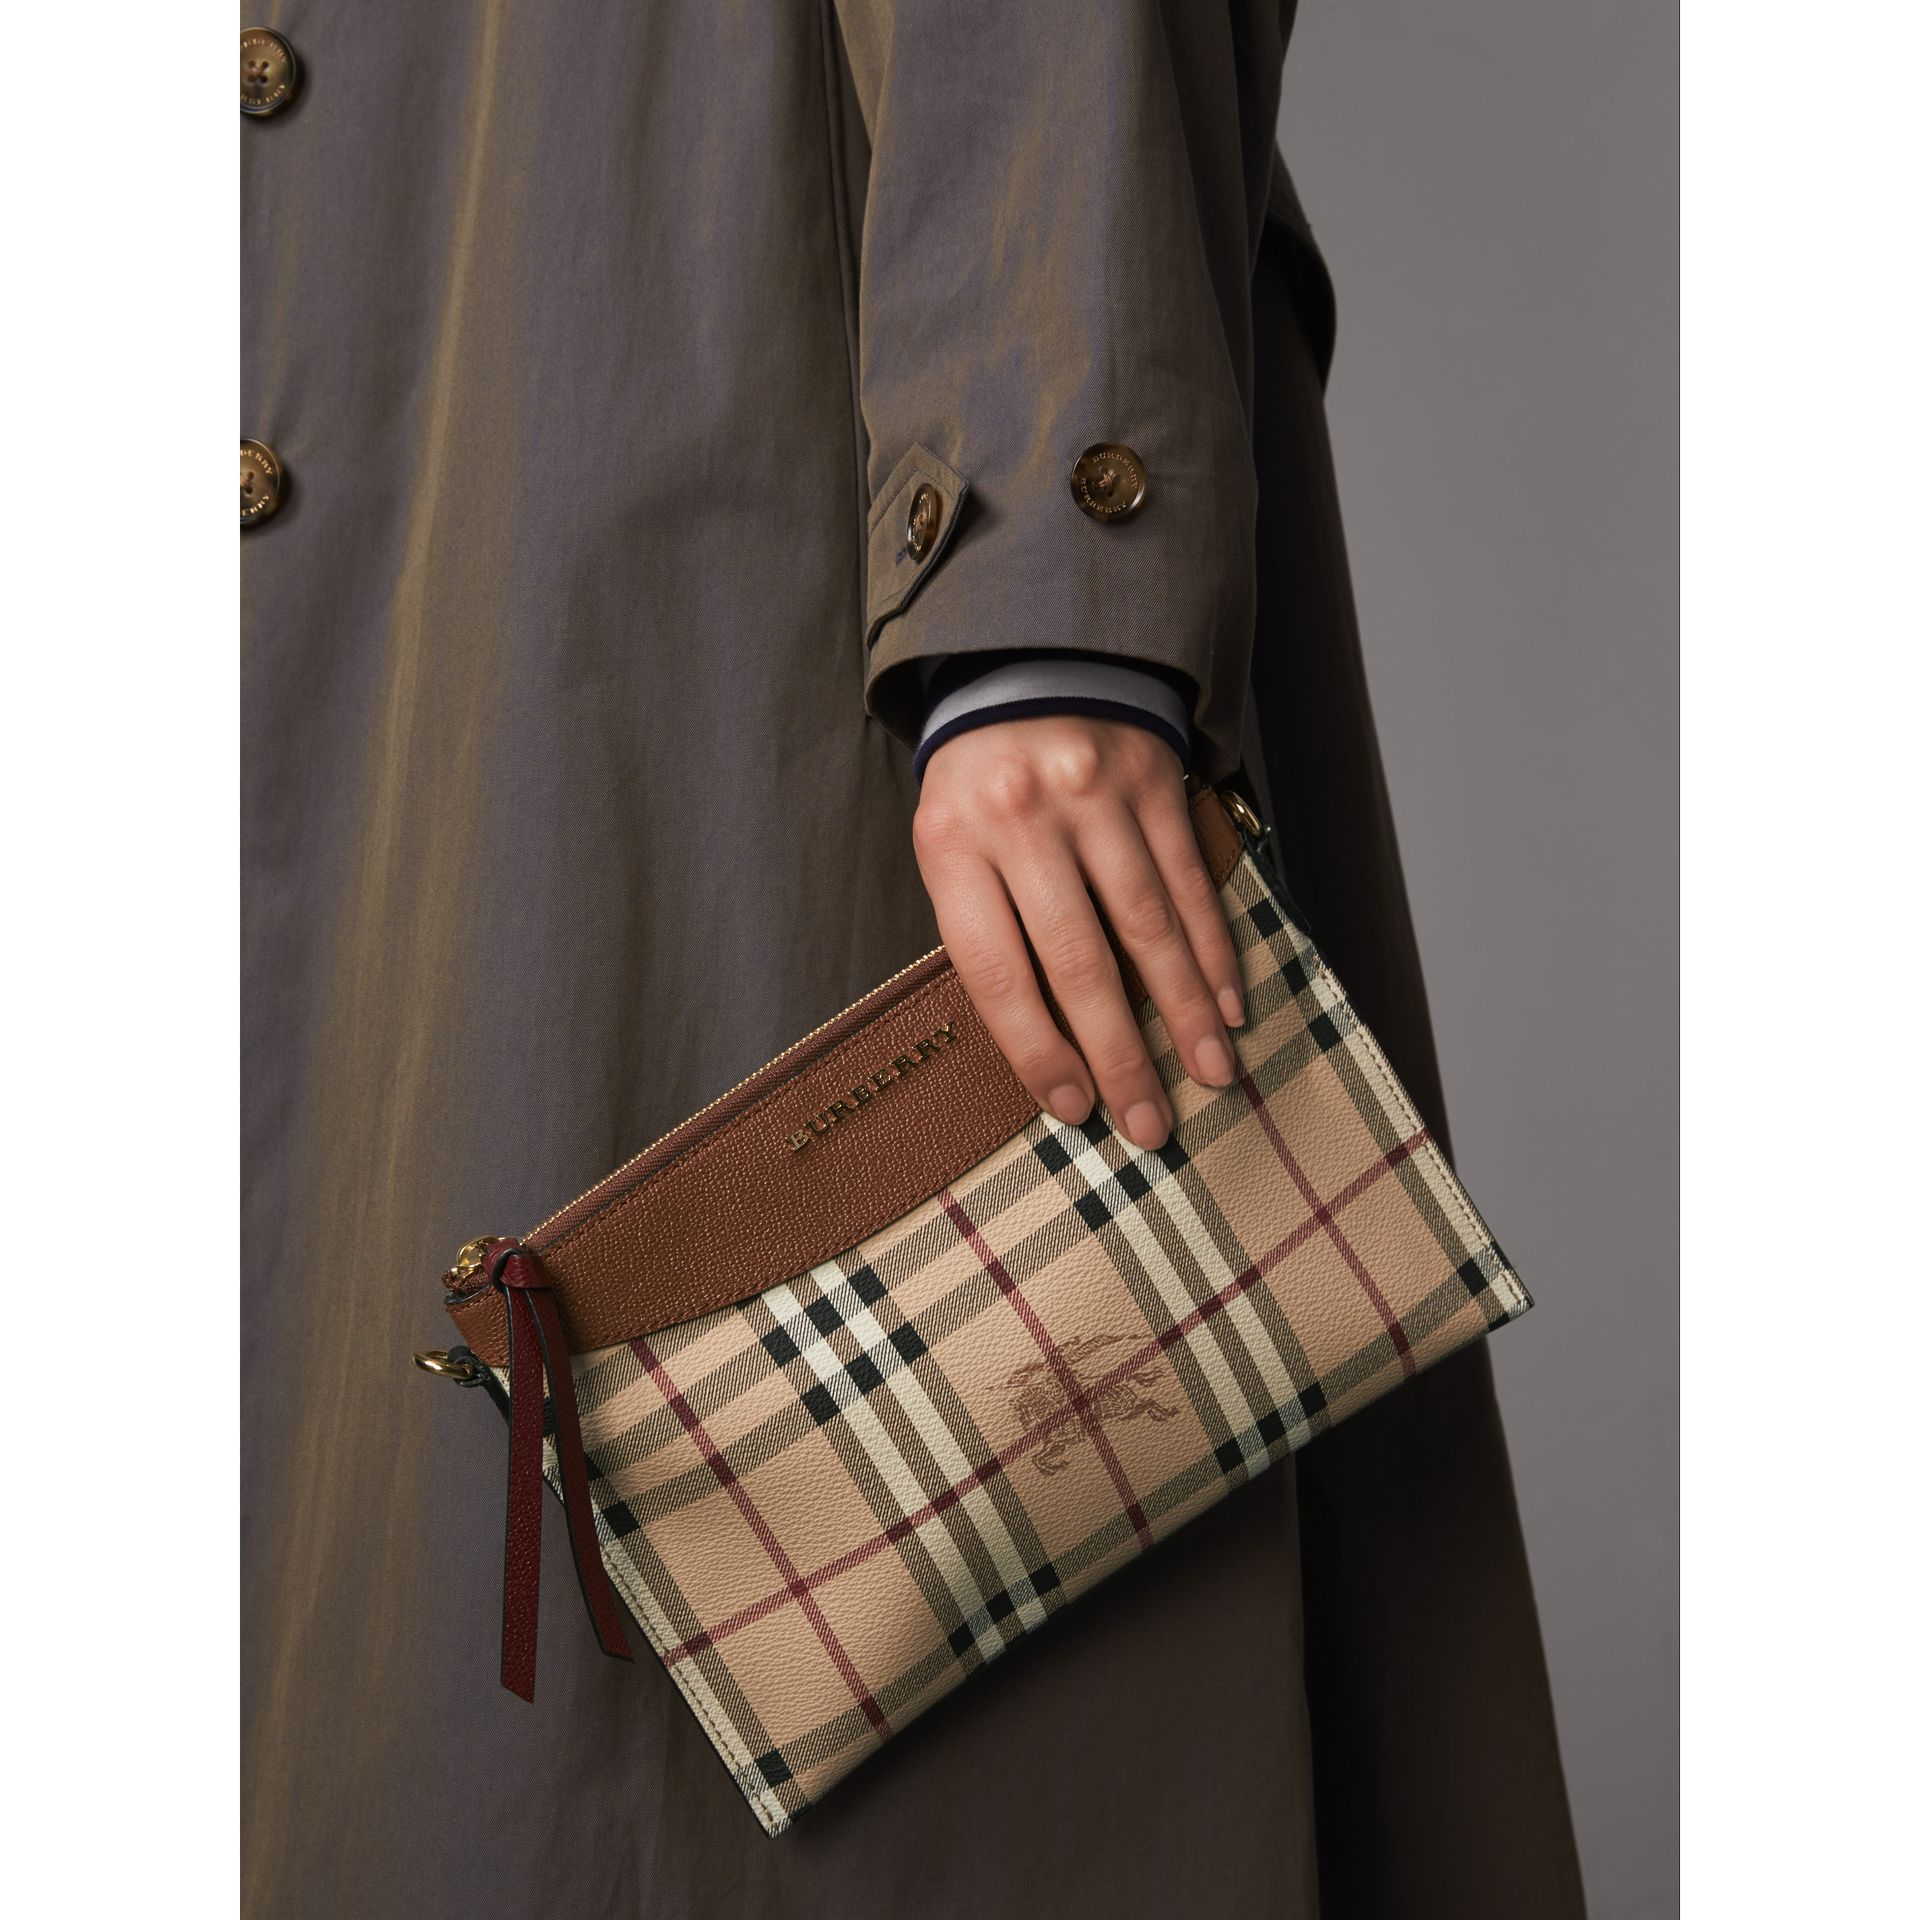 Haymarket Check and Two-tone Leather Clutch Bag in Bright Toffee/ Multicolour - Women | Burberry Hong Kong - gallery image 4